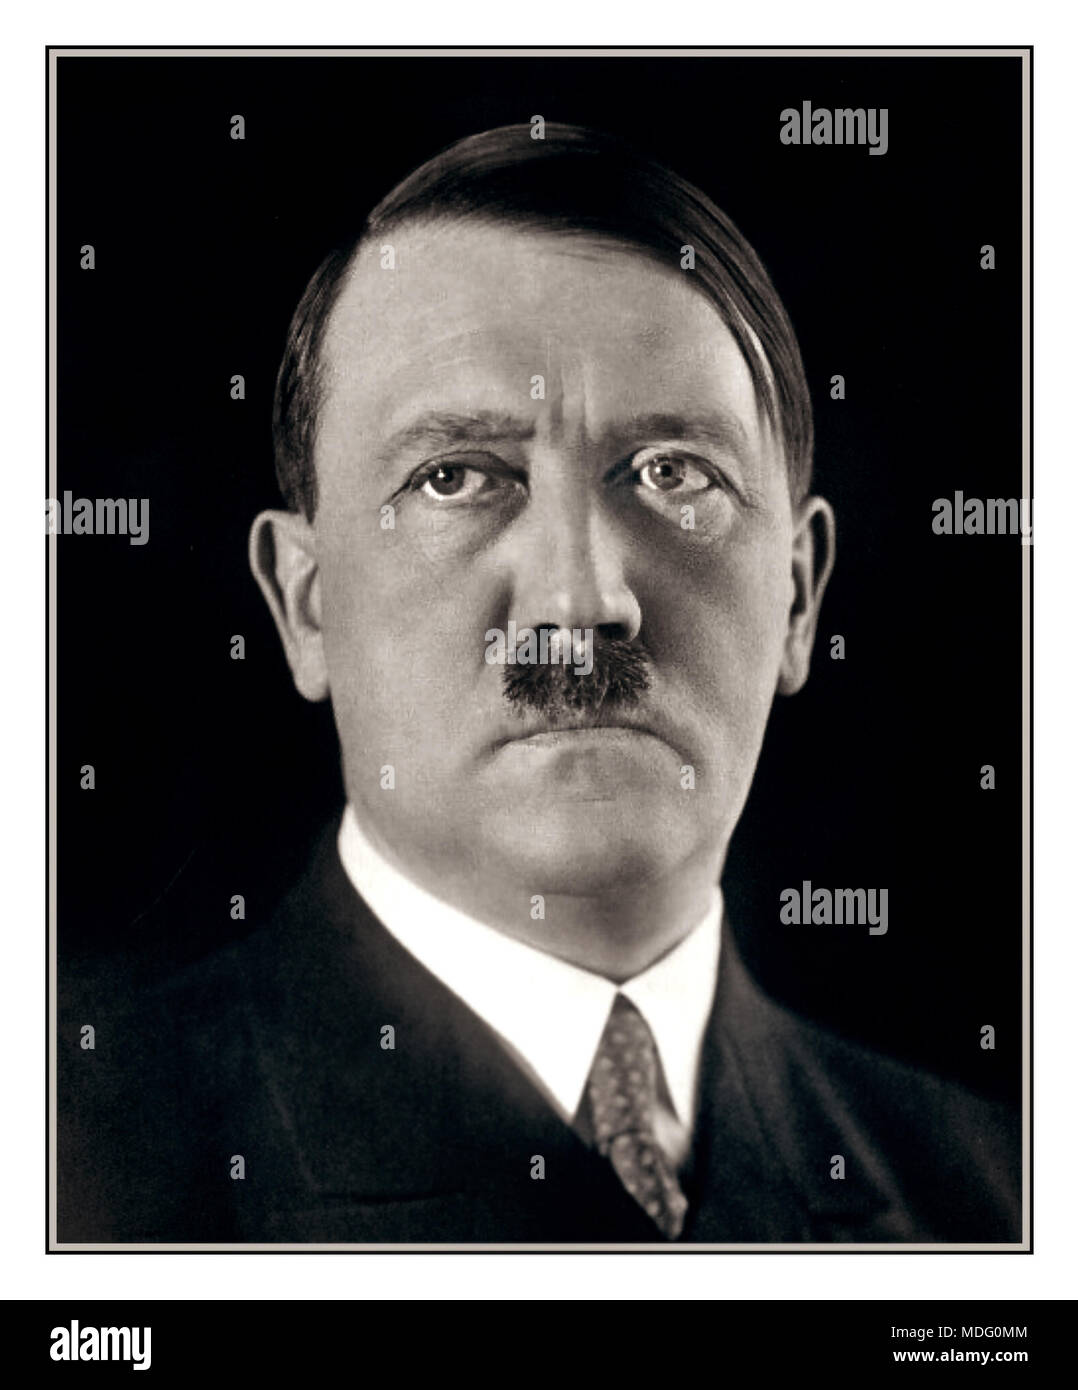 1920's formal portrait Adolf Hitler striking a pose for his photographer Heinrich Hoffmann. 1925. After seeing the photographs, apparently Hitler ordered Hoffmann to destroy the negatives, but he disobeyed. - Stock Image